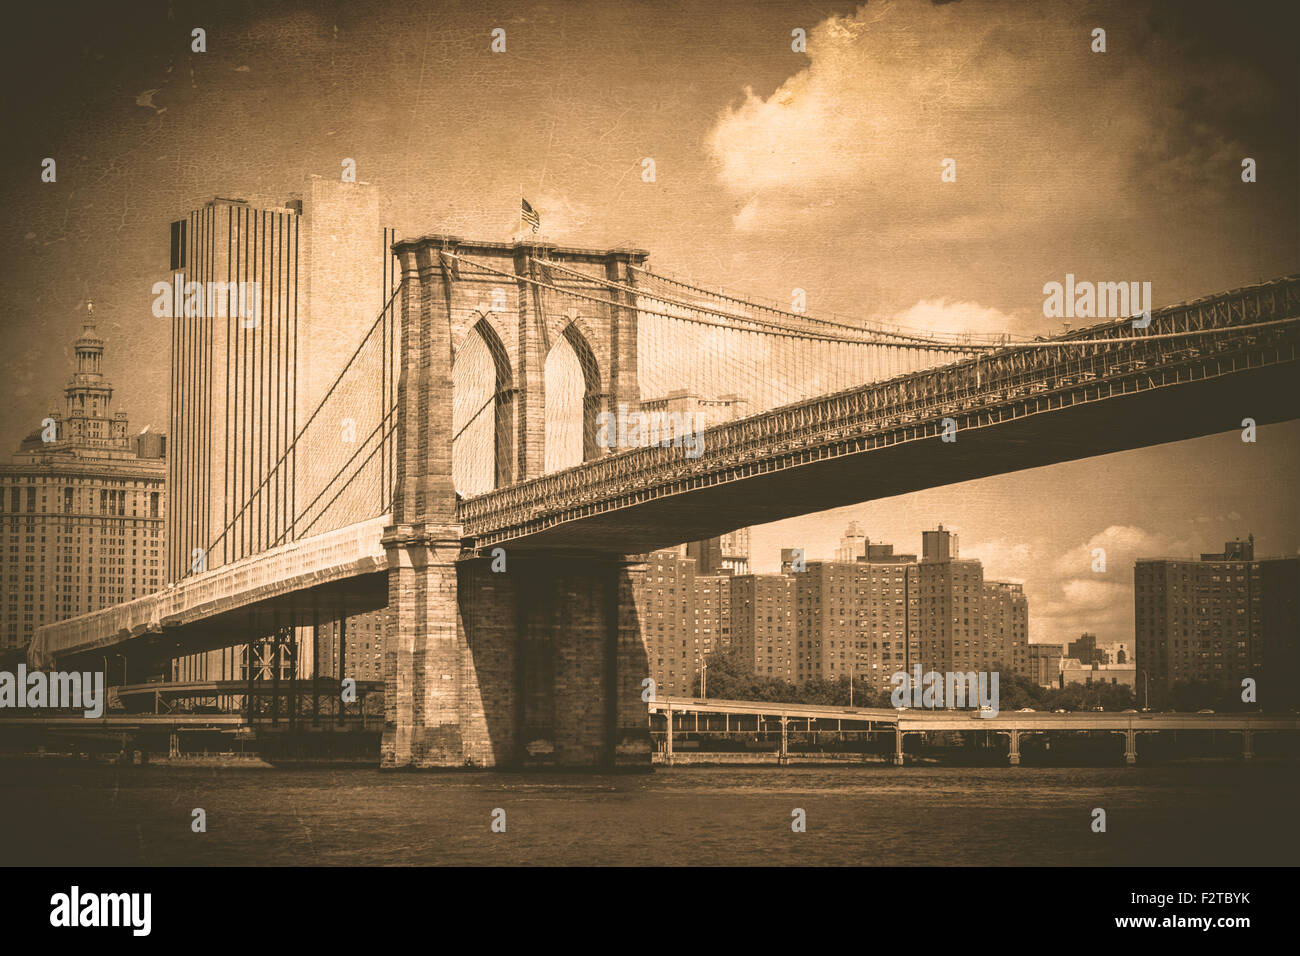 Brooklyn Bridge in New York City with vintage texture effect - Stock Image